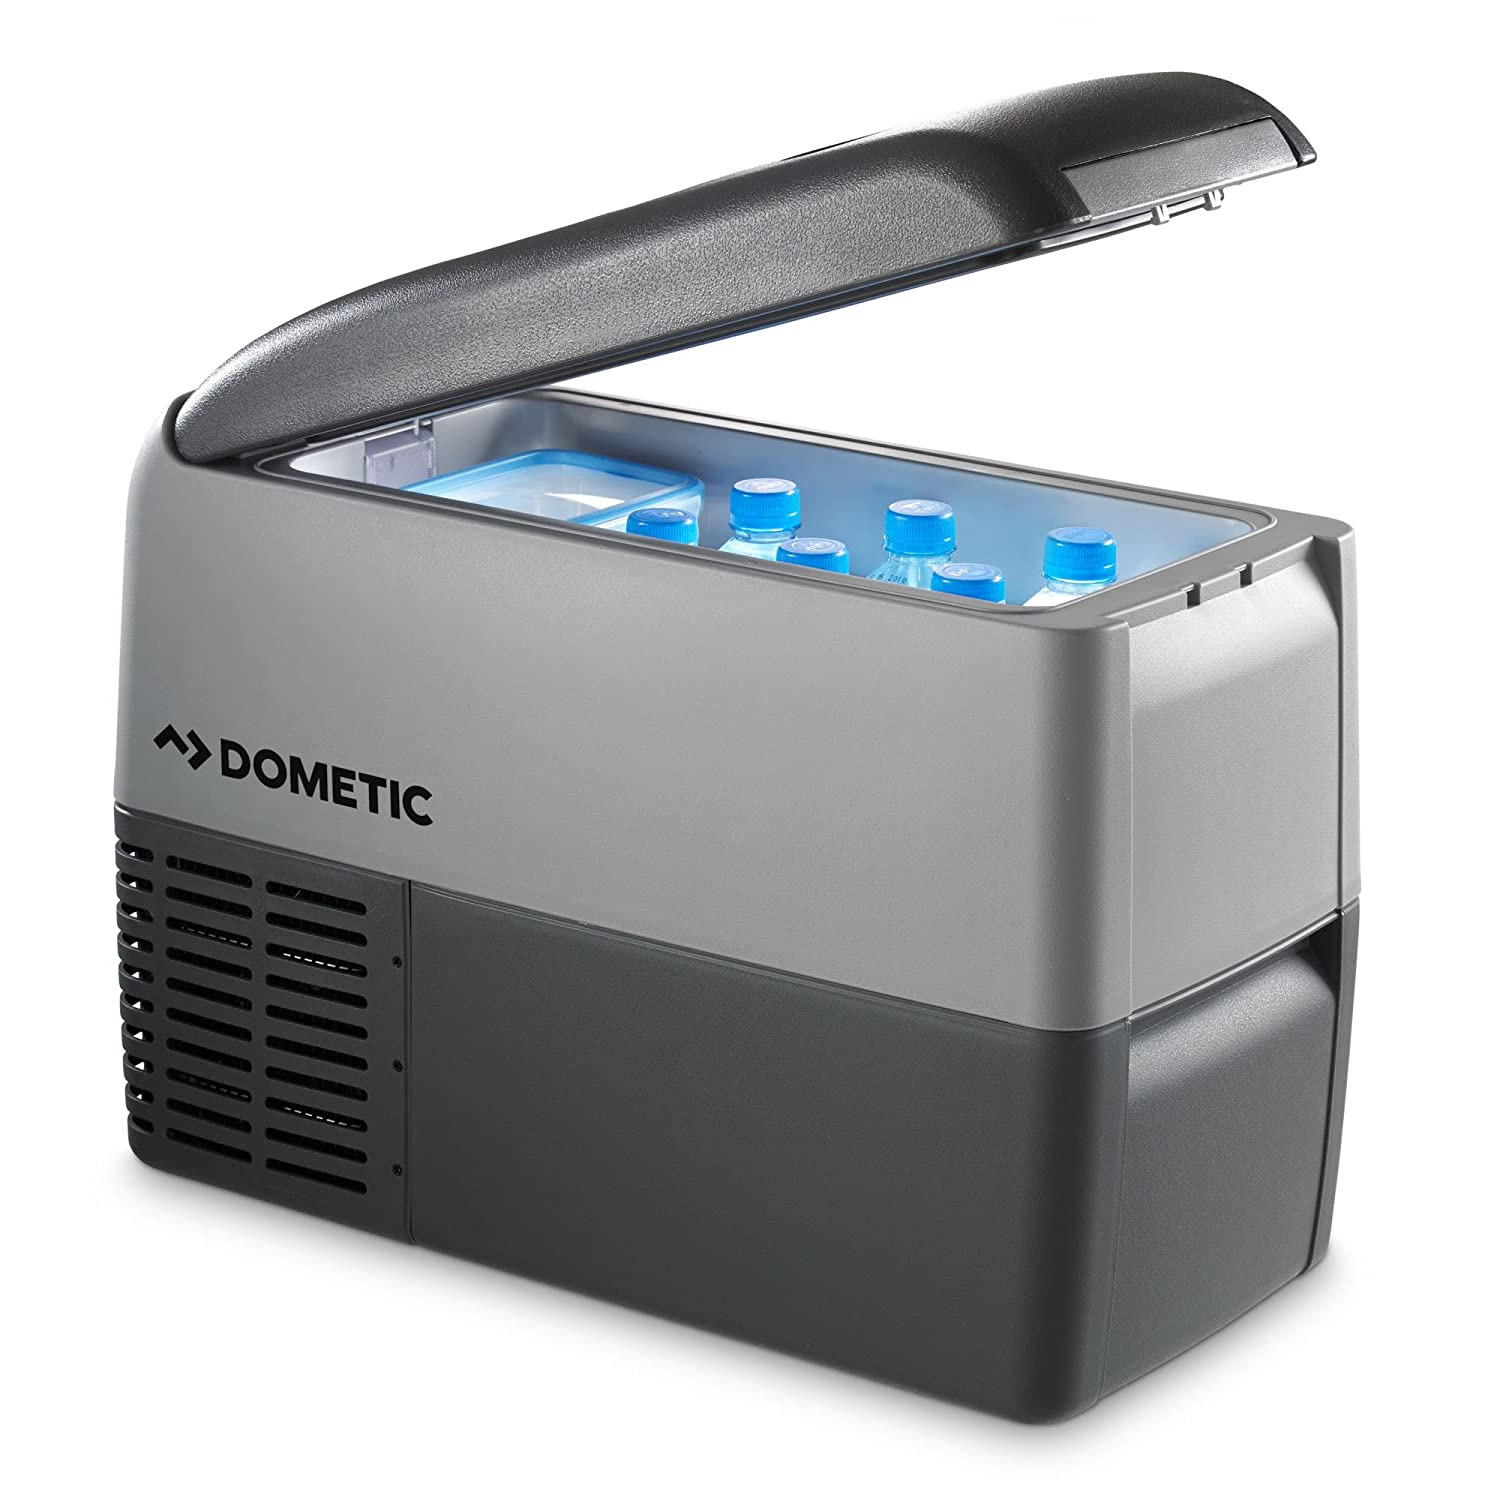 Dometic COOLFREEZE CDF 26 Kompressor Kühlbox I Gefrier Box mit